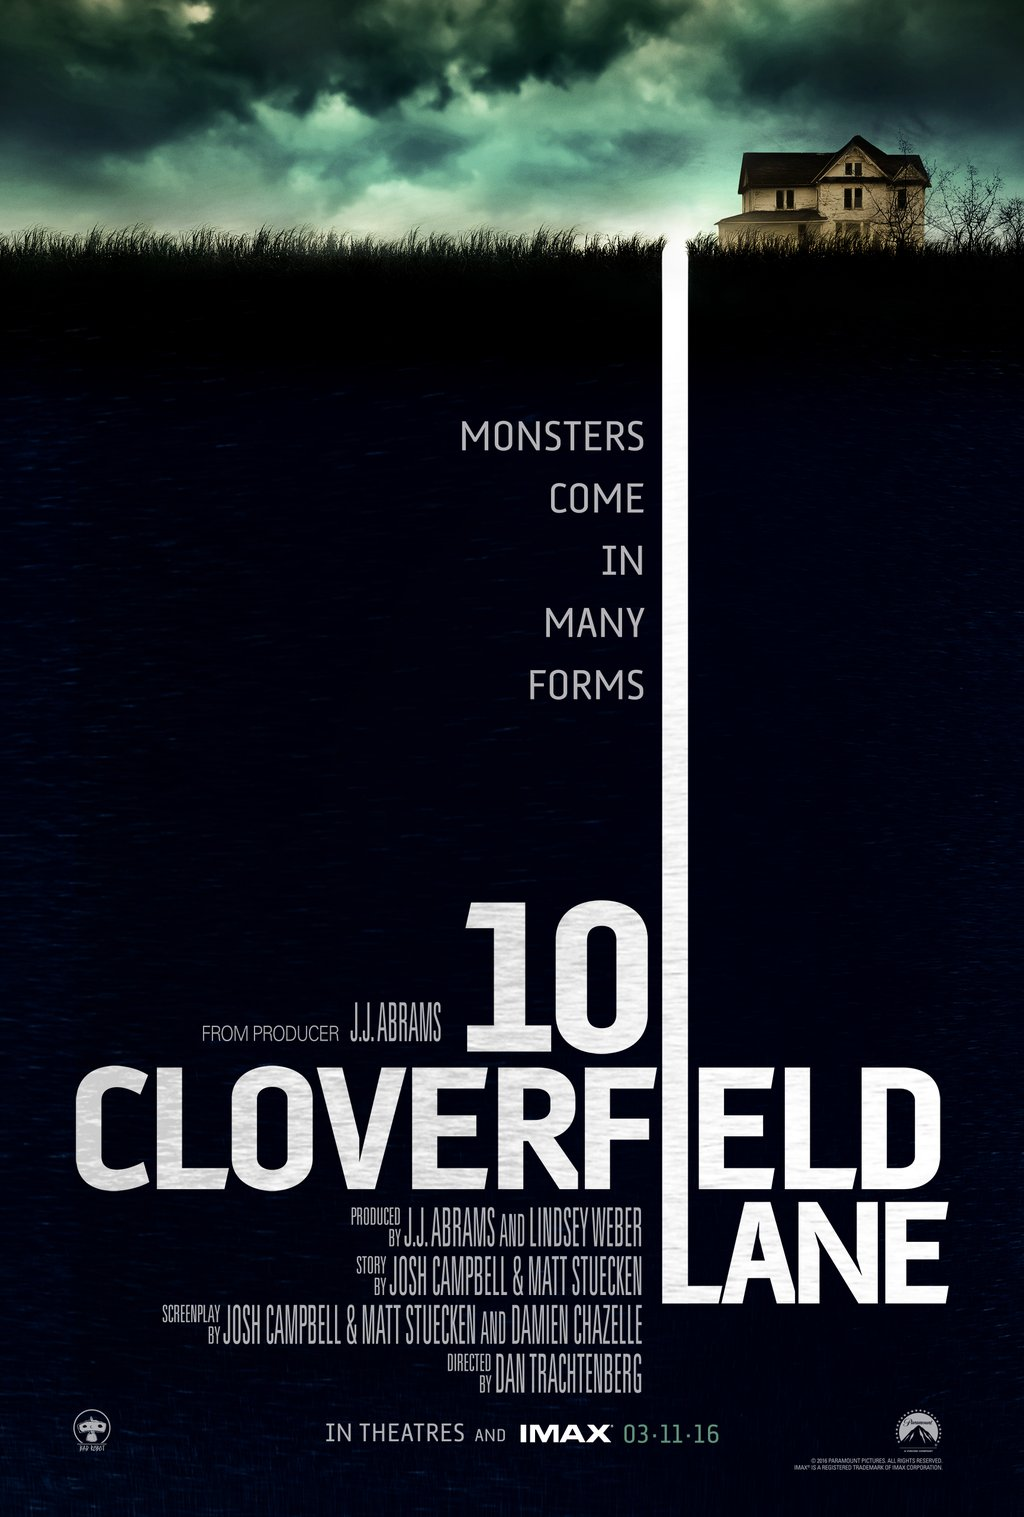 15012016_10_cloverfied_lane_poster